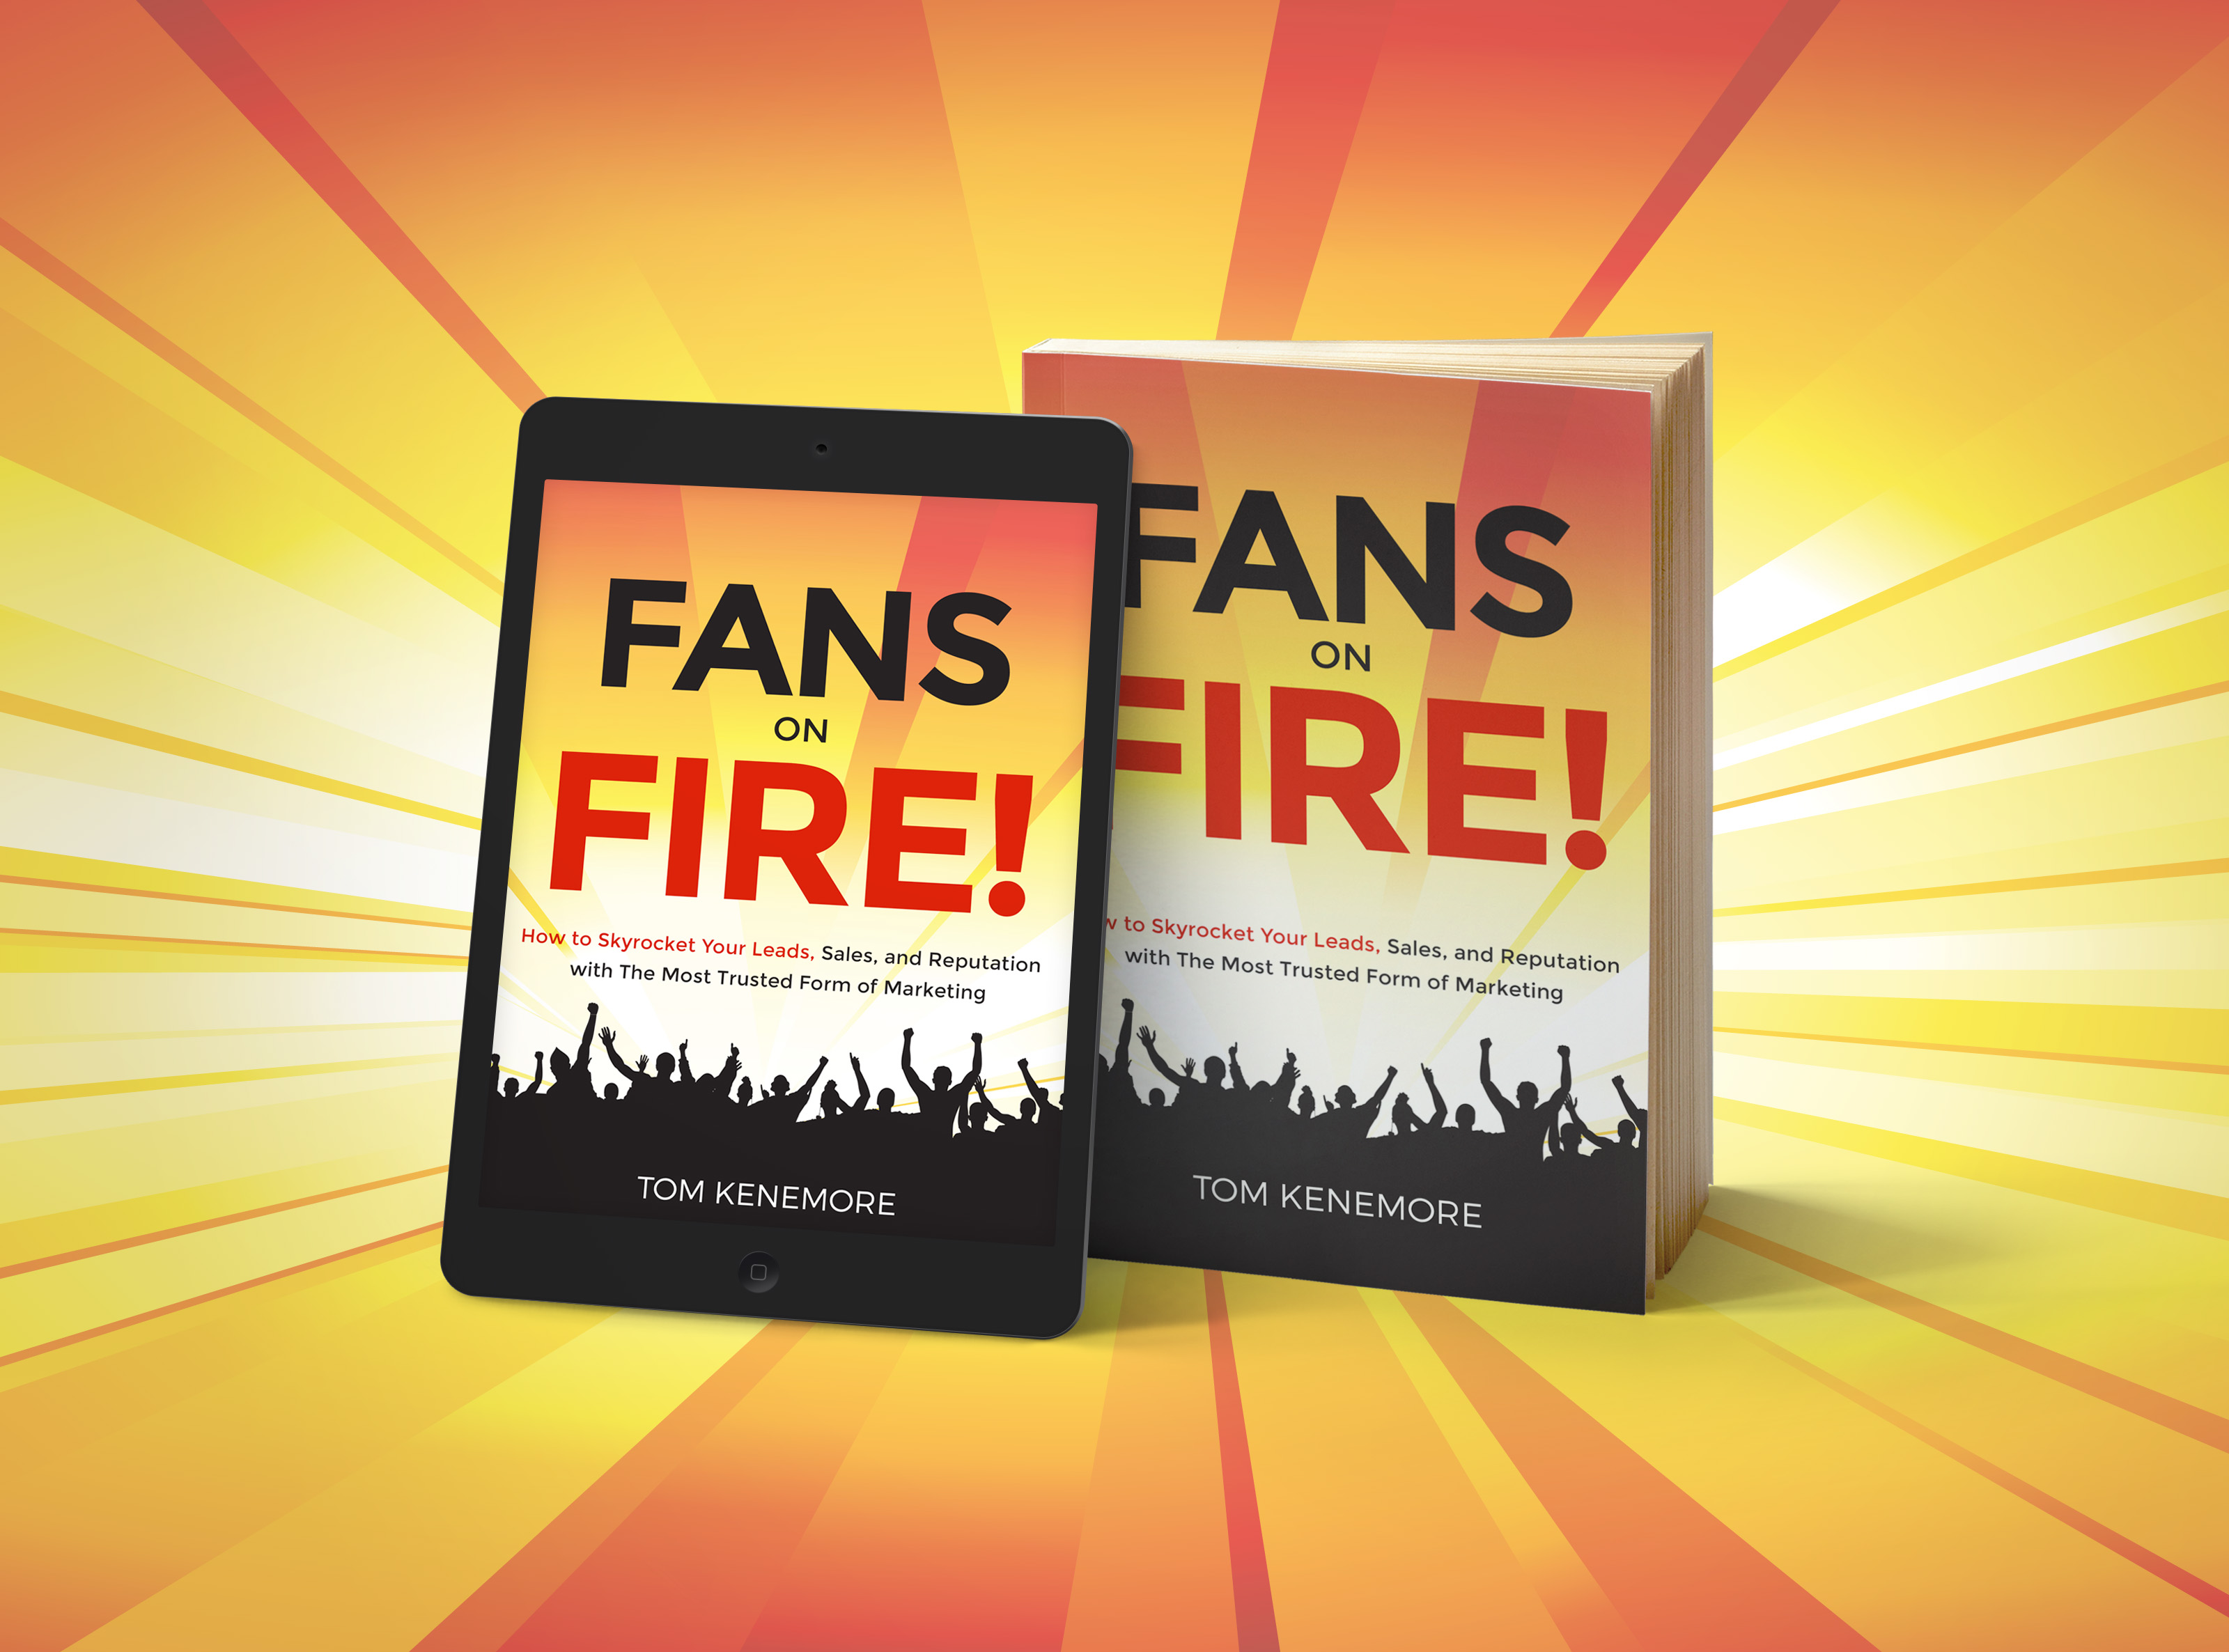 Fans On Fire! How to Skyrocket Your Leads, Sales, and Reputation with the Most Trusted Form of Marketing